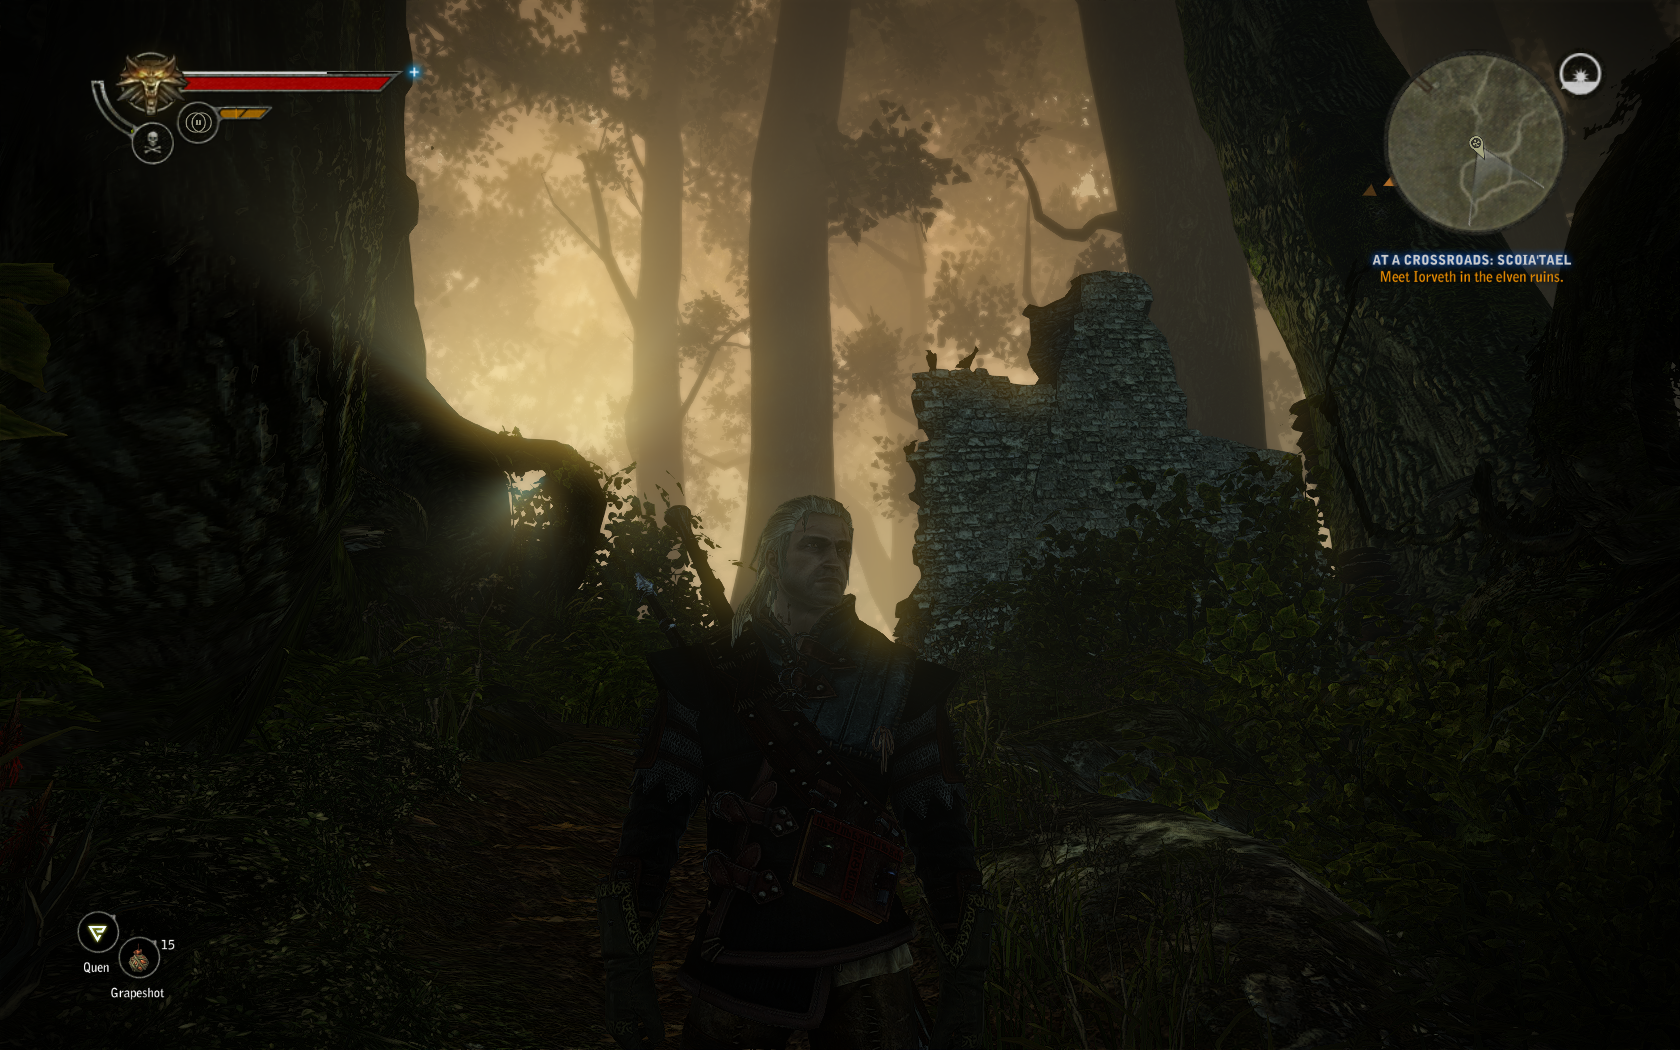 witcher22012-04-2801-ljqtl.png